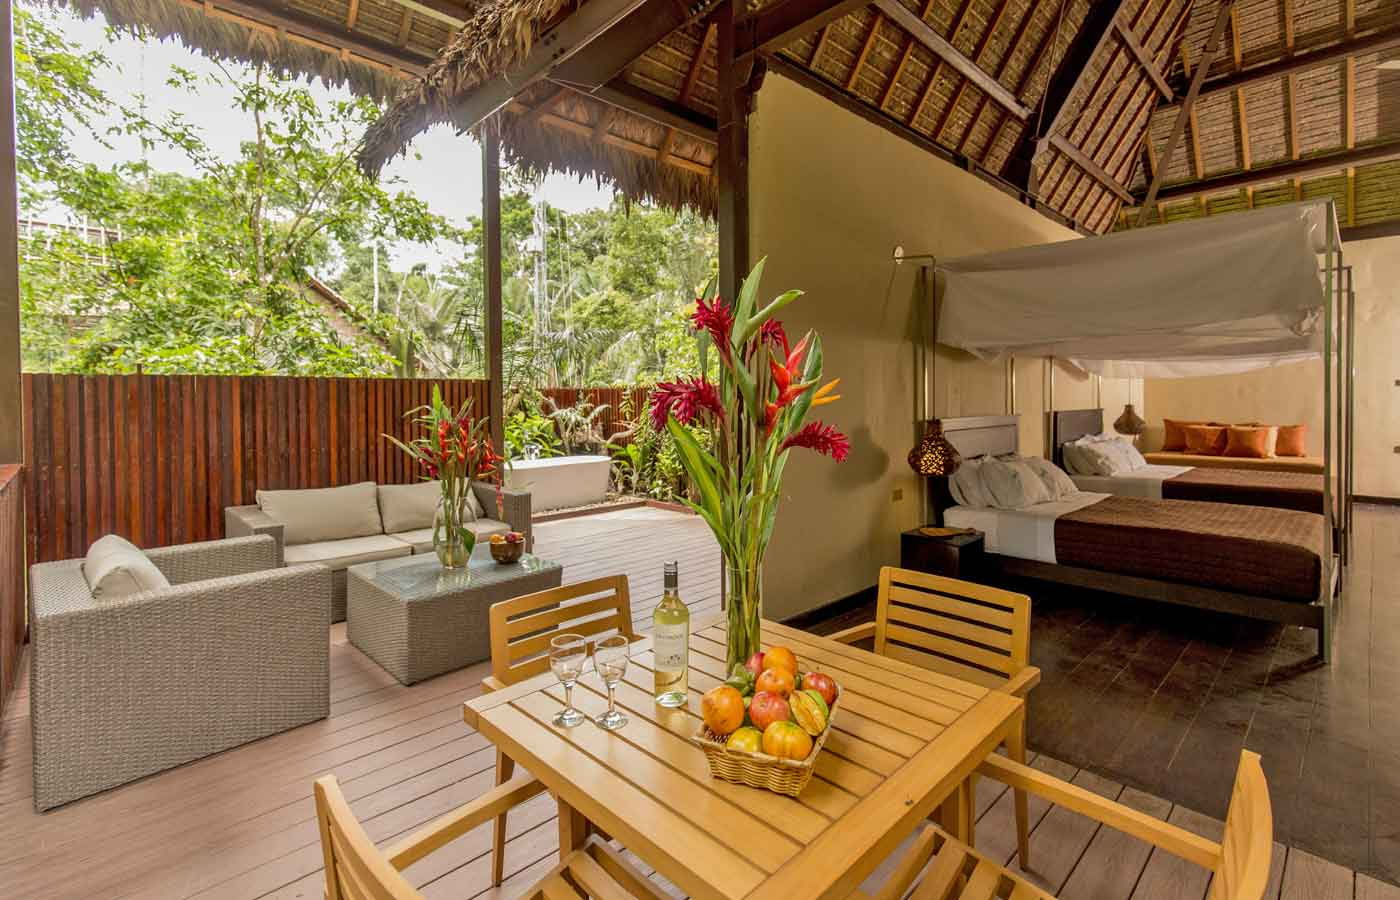 Luxury holidays to the Peruvian Amazon